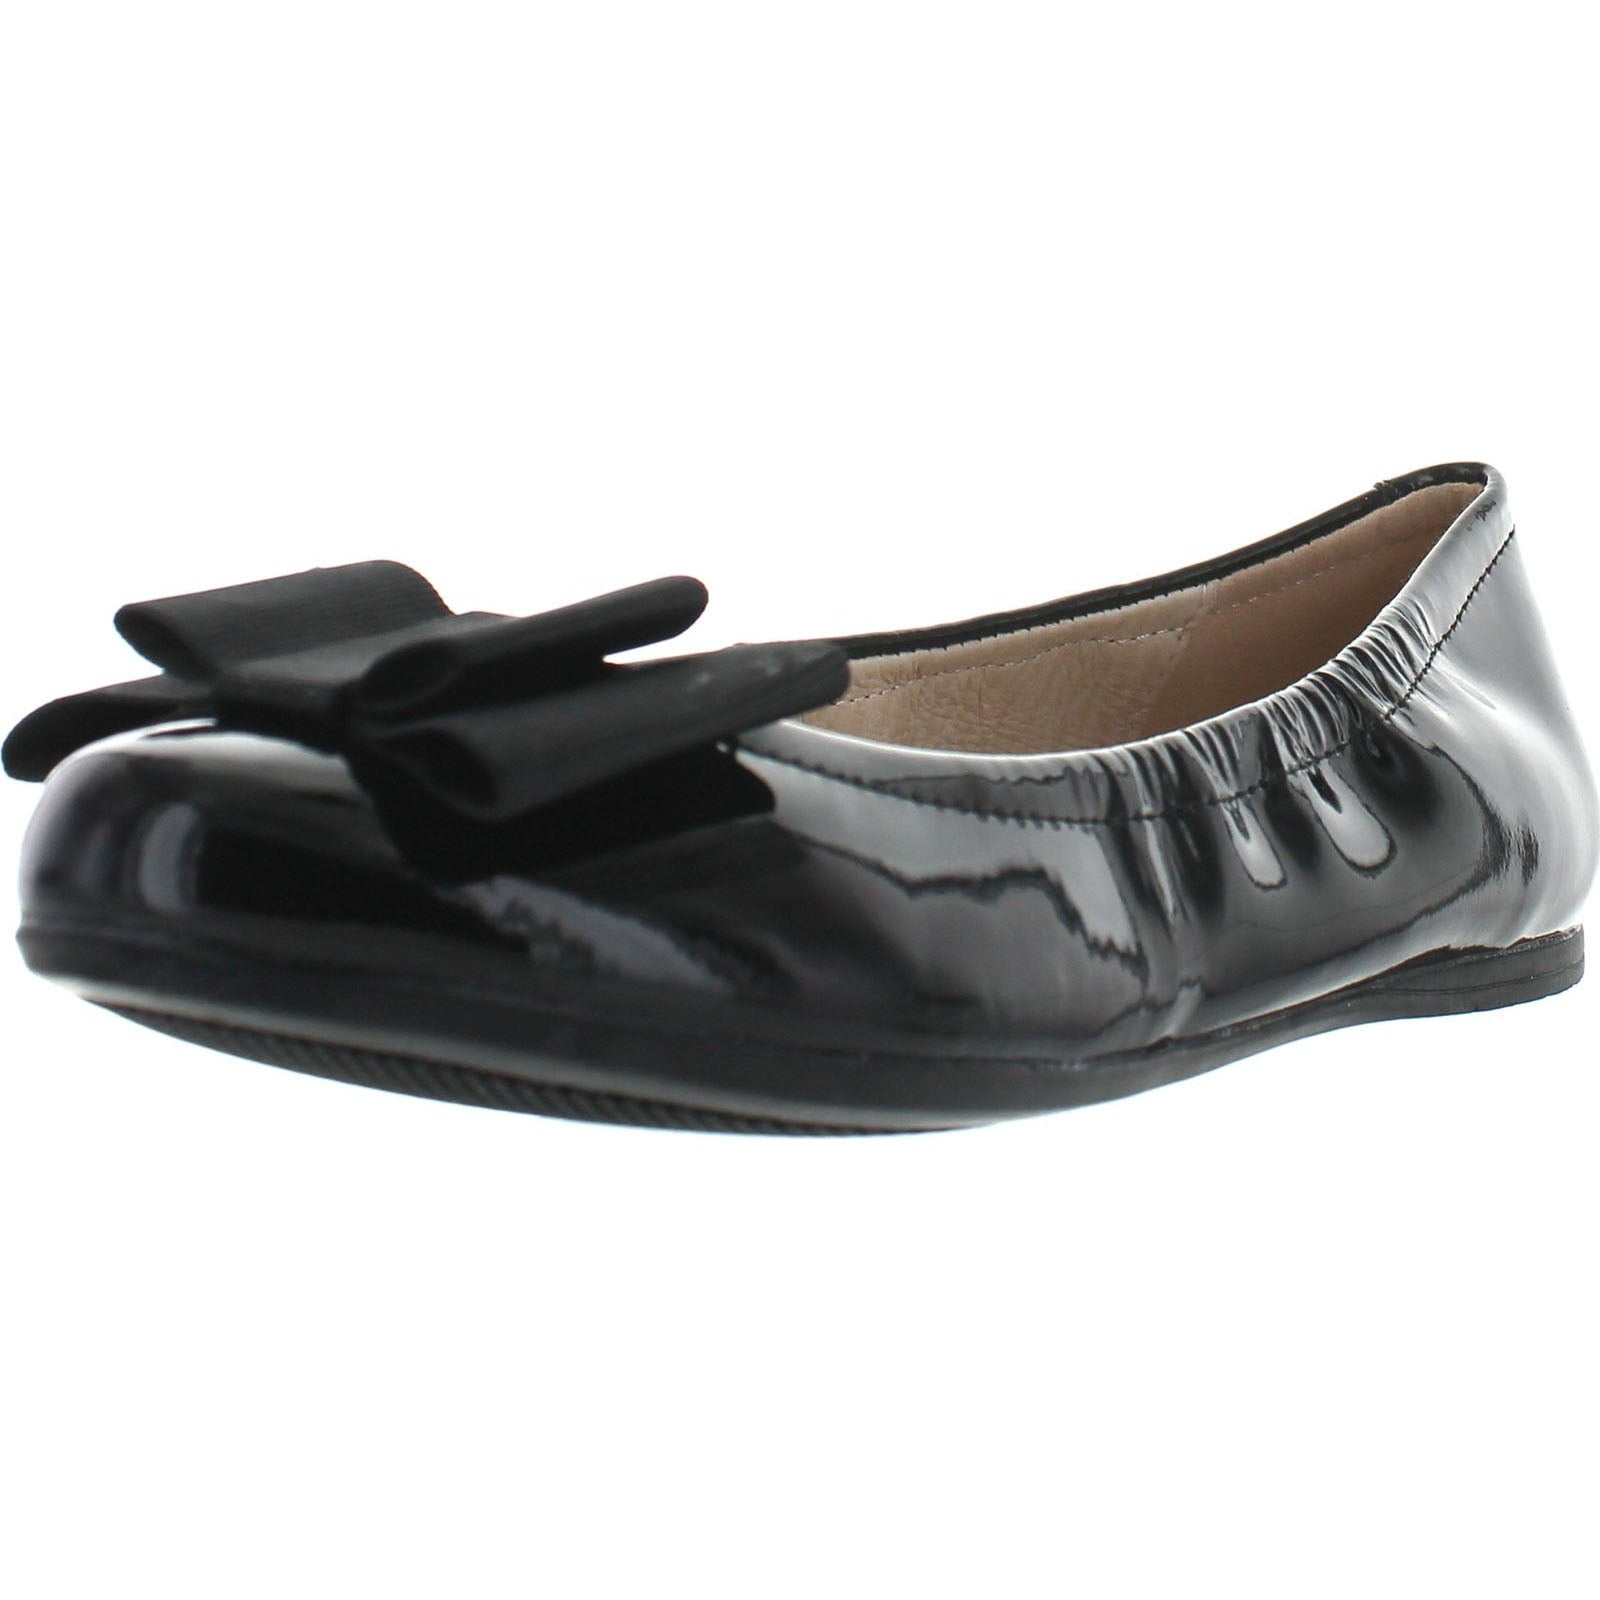 Venettini Girls 55-Jenifer Leather Dress Flats With Bow